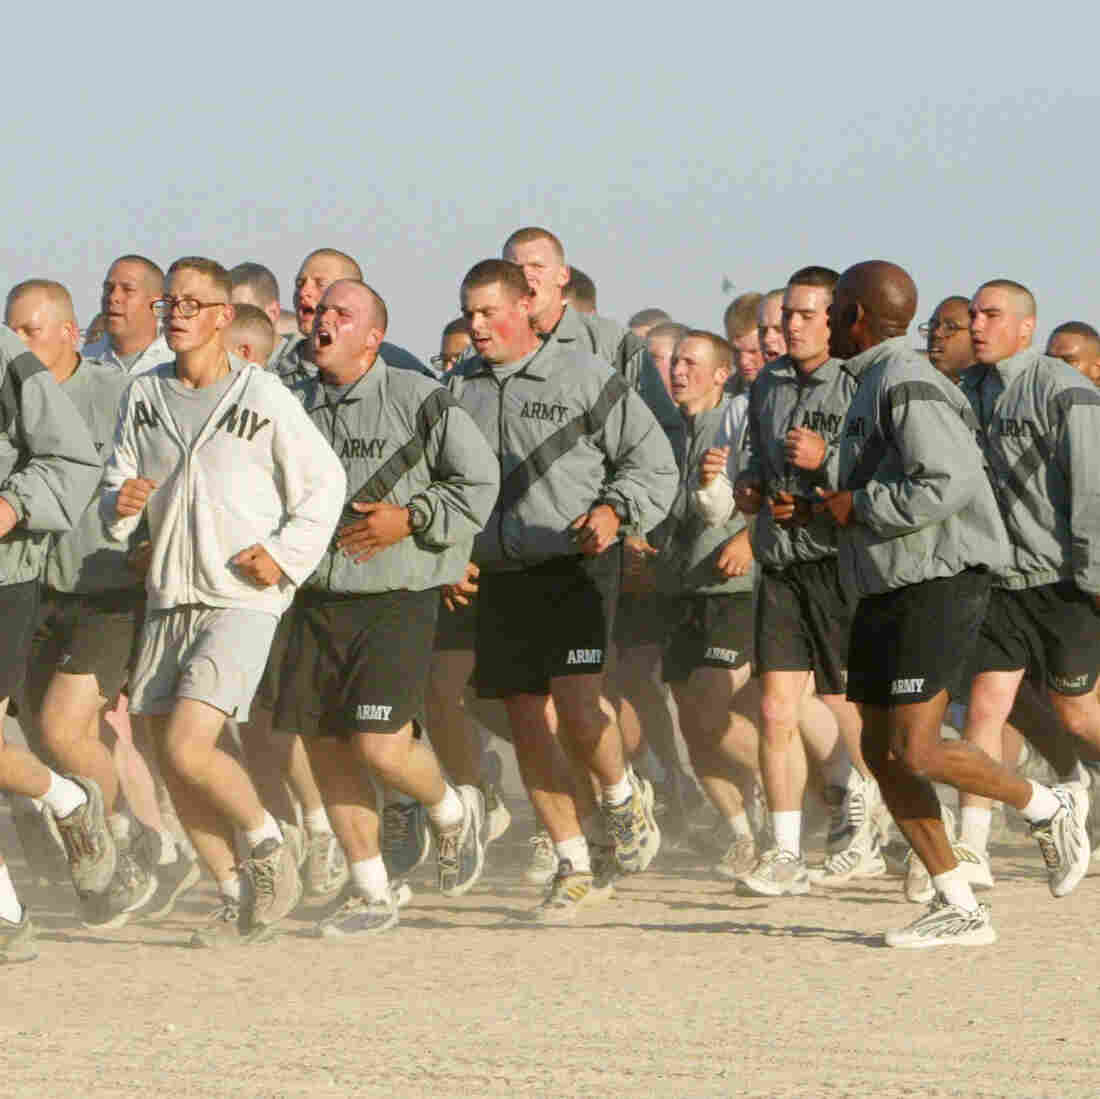 U.S. Army soldiers take part in a morning run at Camp New York, Kuwait, in 2002.